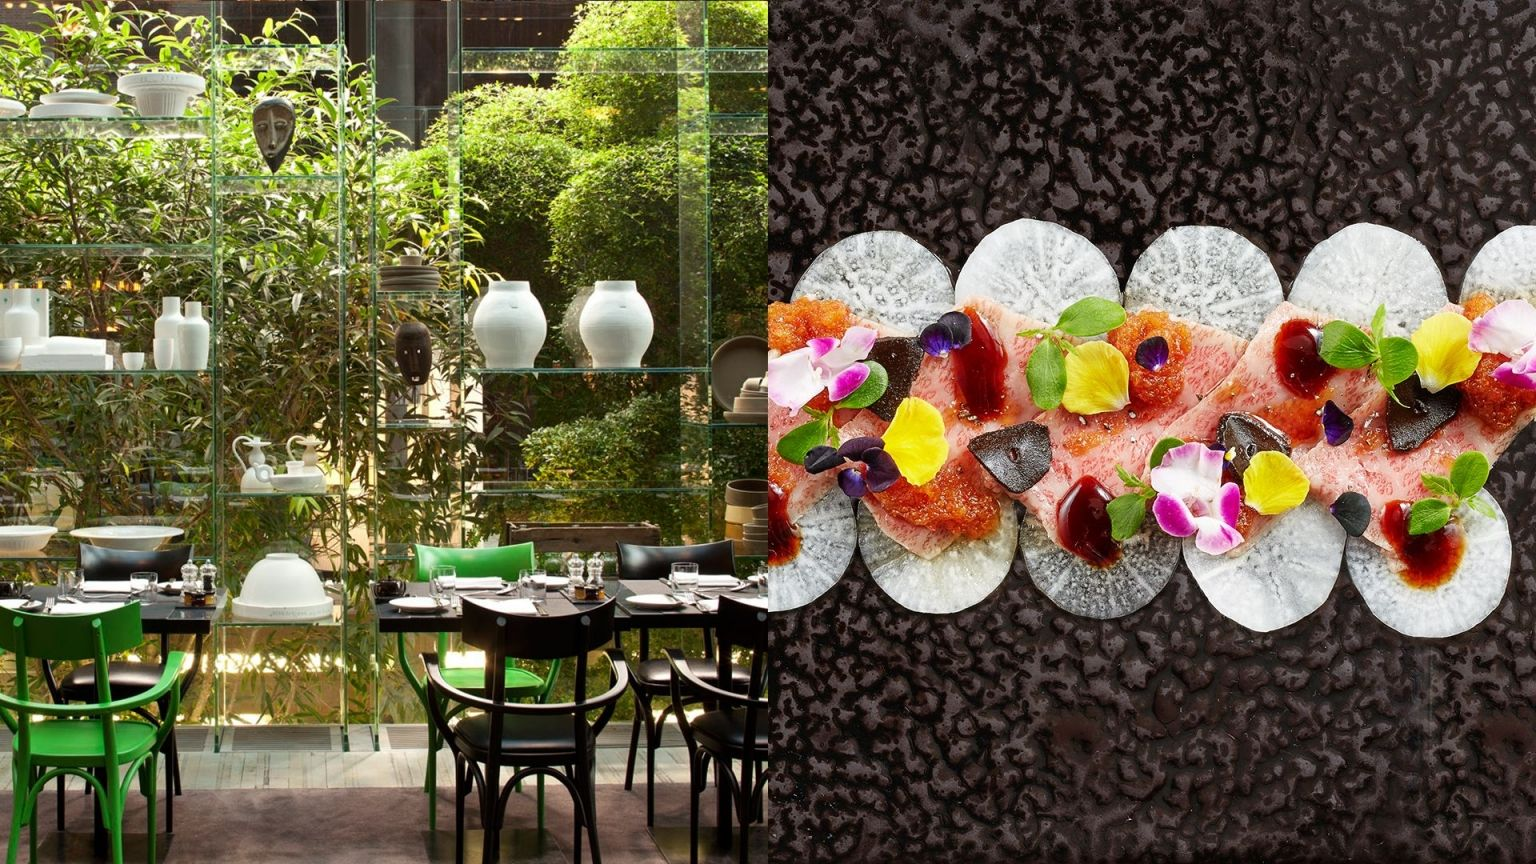 Restaurants Conservatorium hotel in Amsterdam